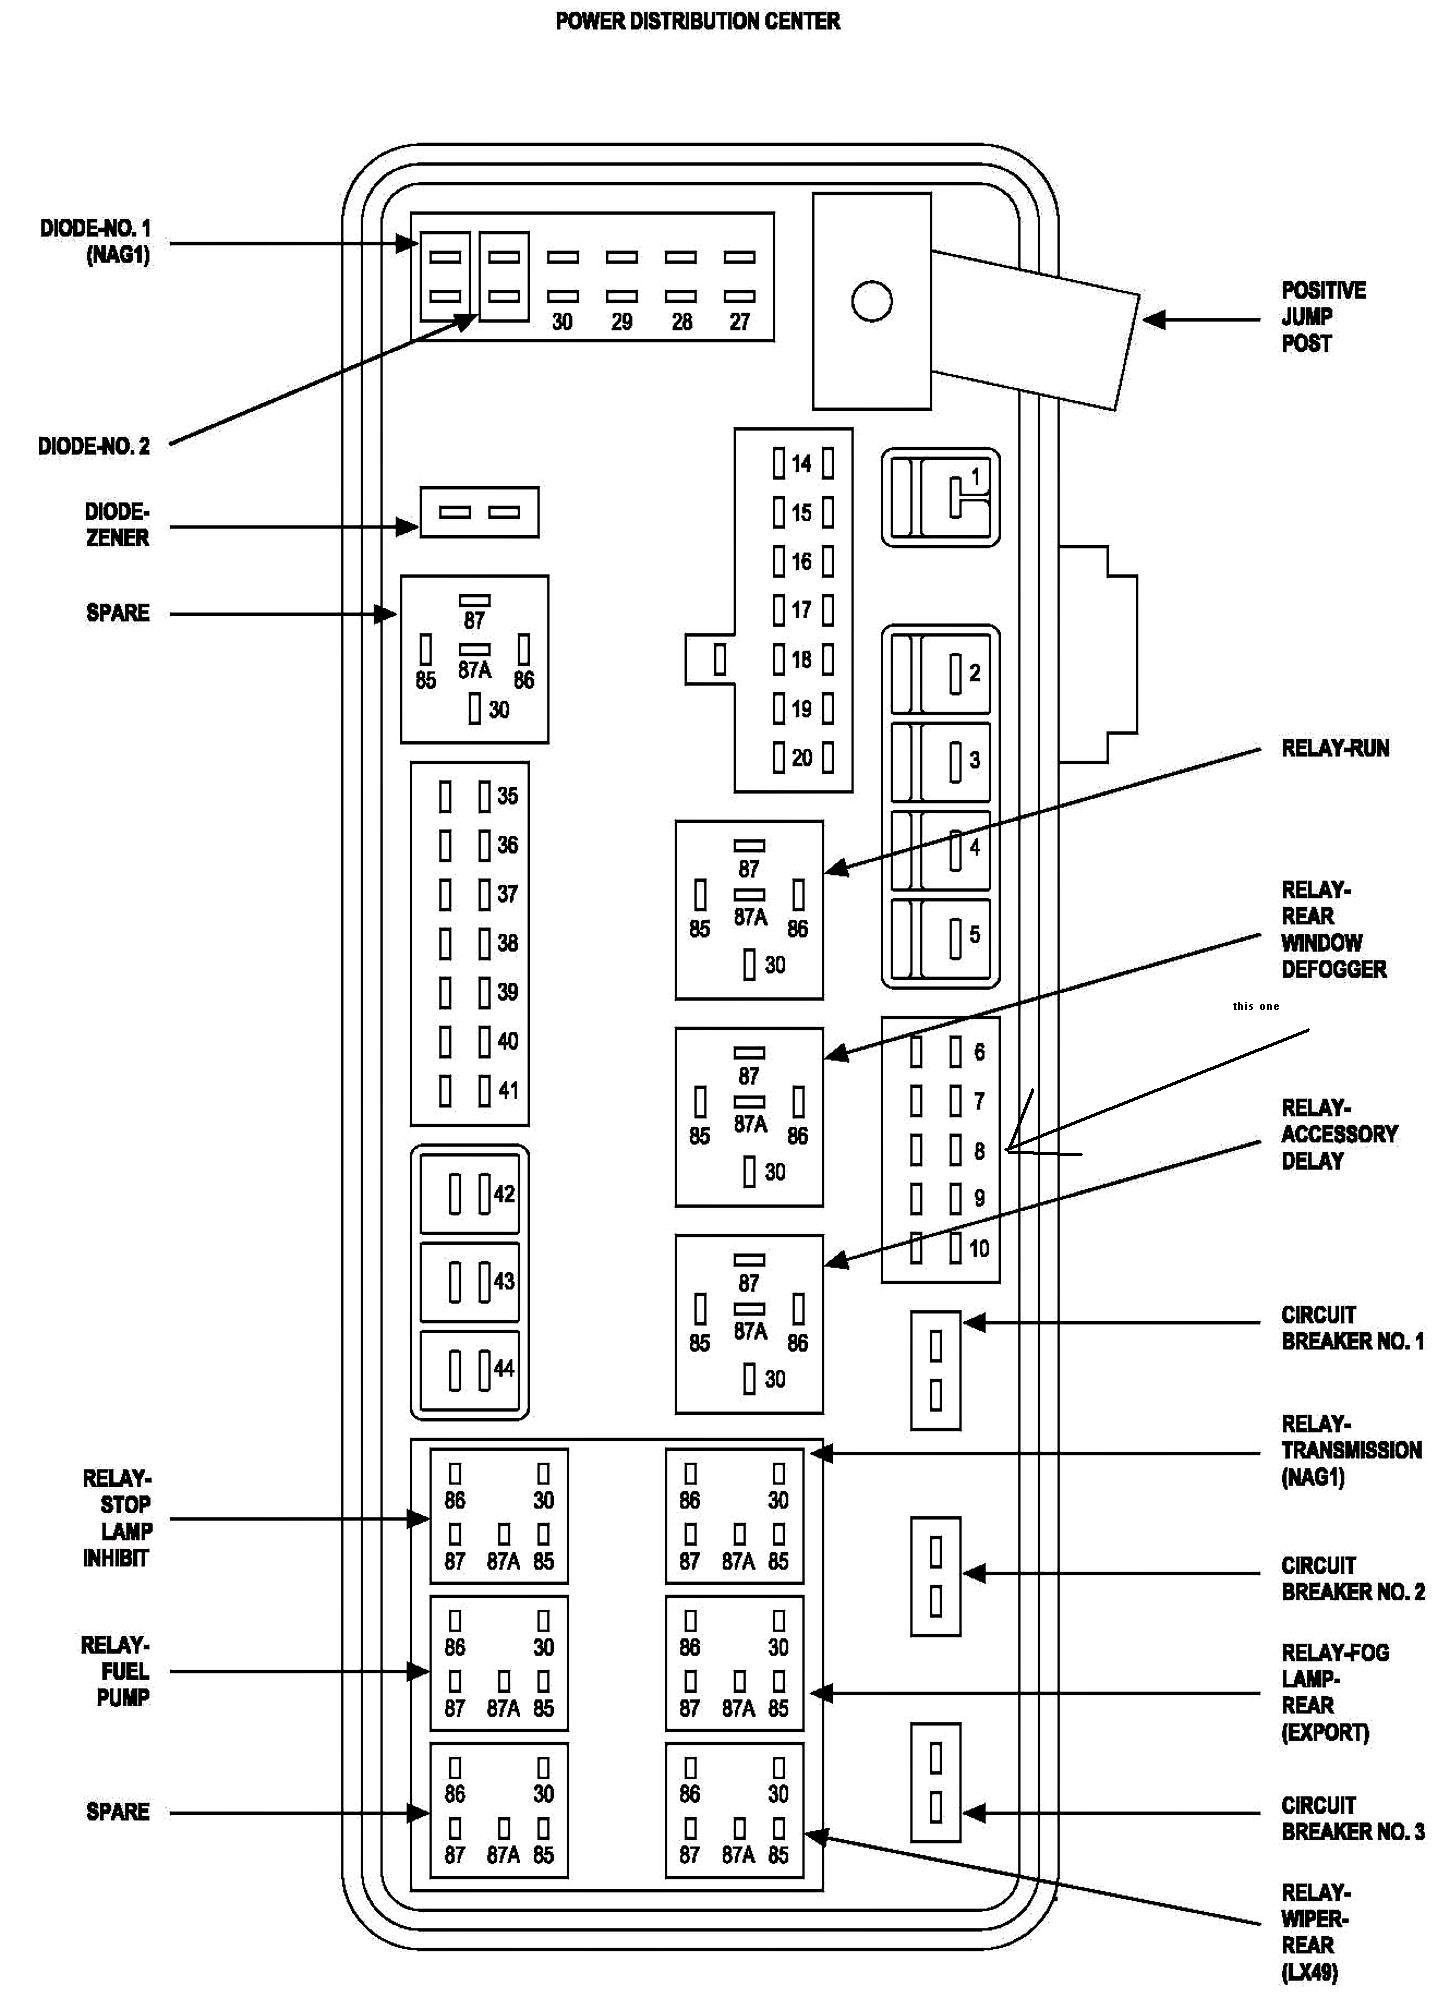 2005 Pontiac Vibe Fuse Box Location Wiring Library Diagram 2013 Dodge Ram Truck U2022 For